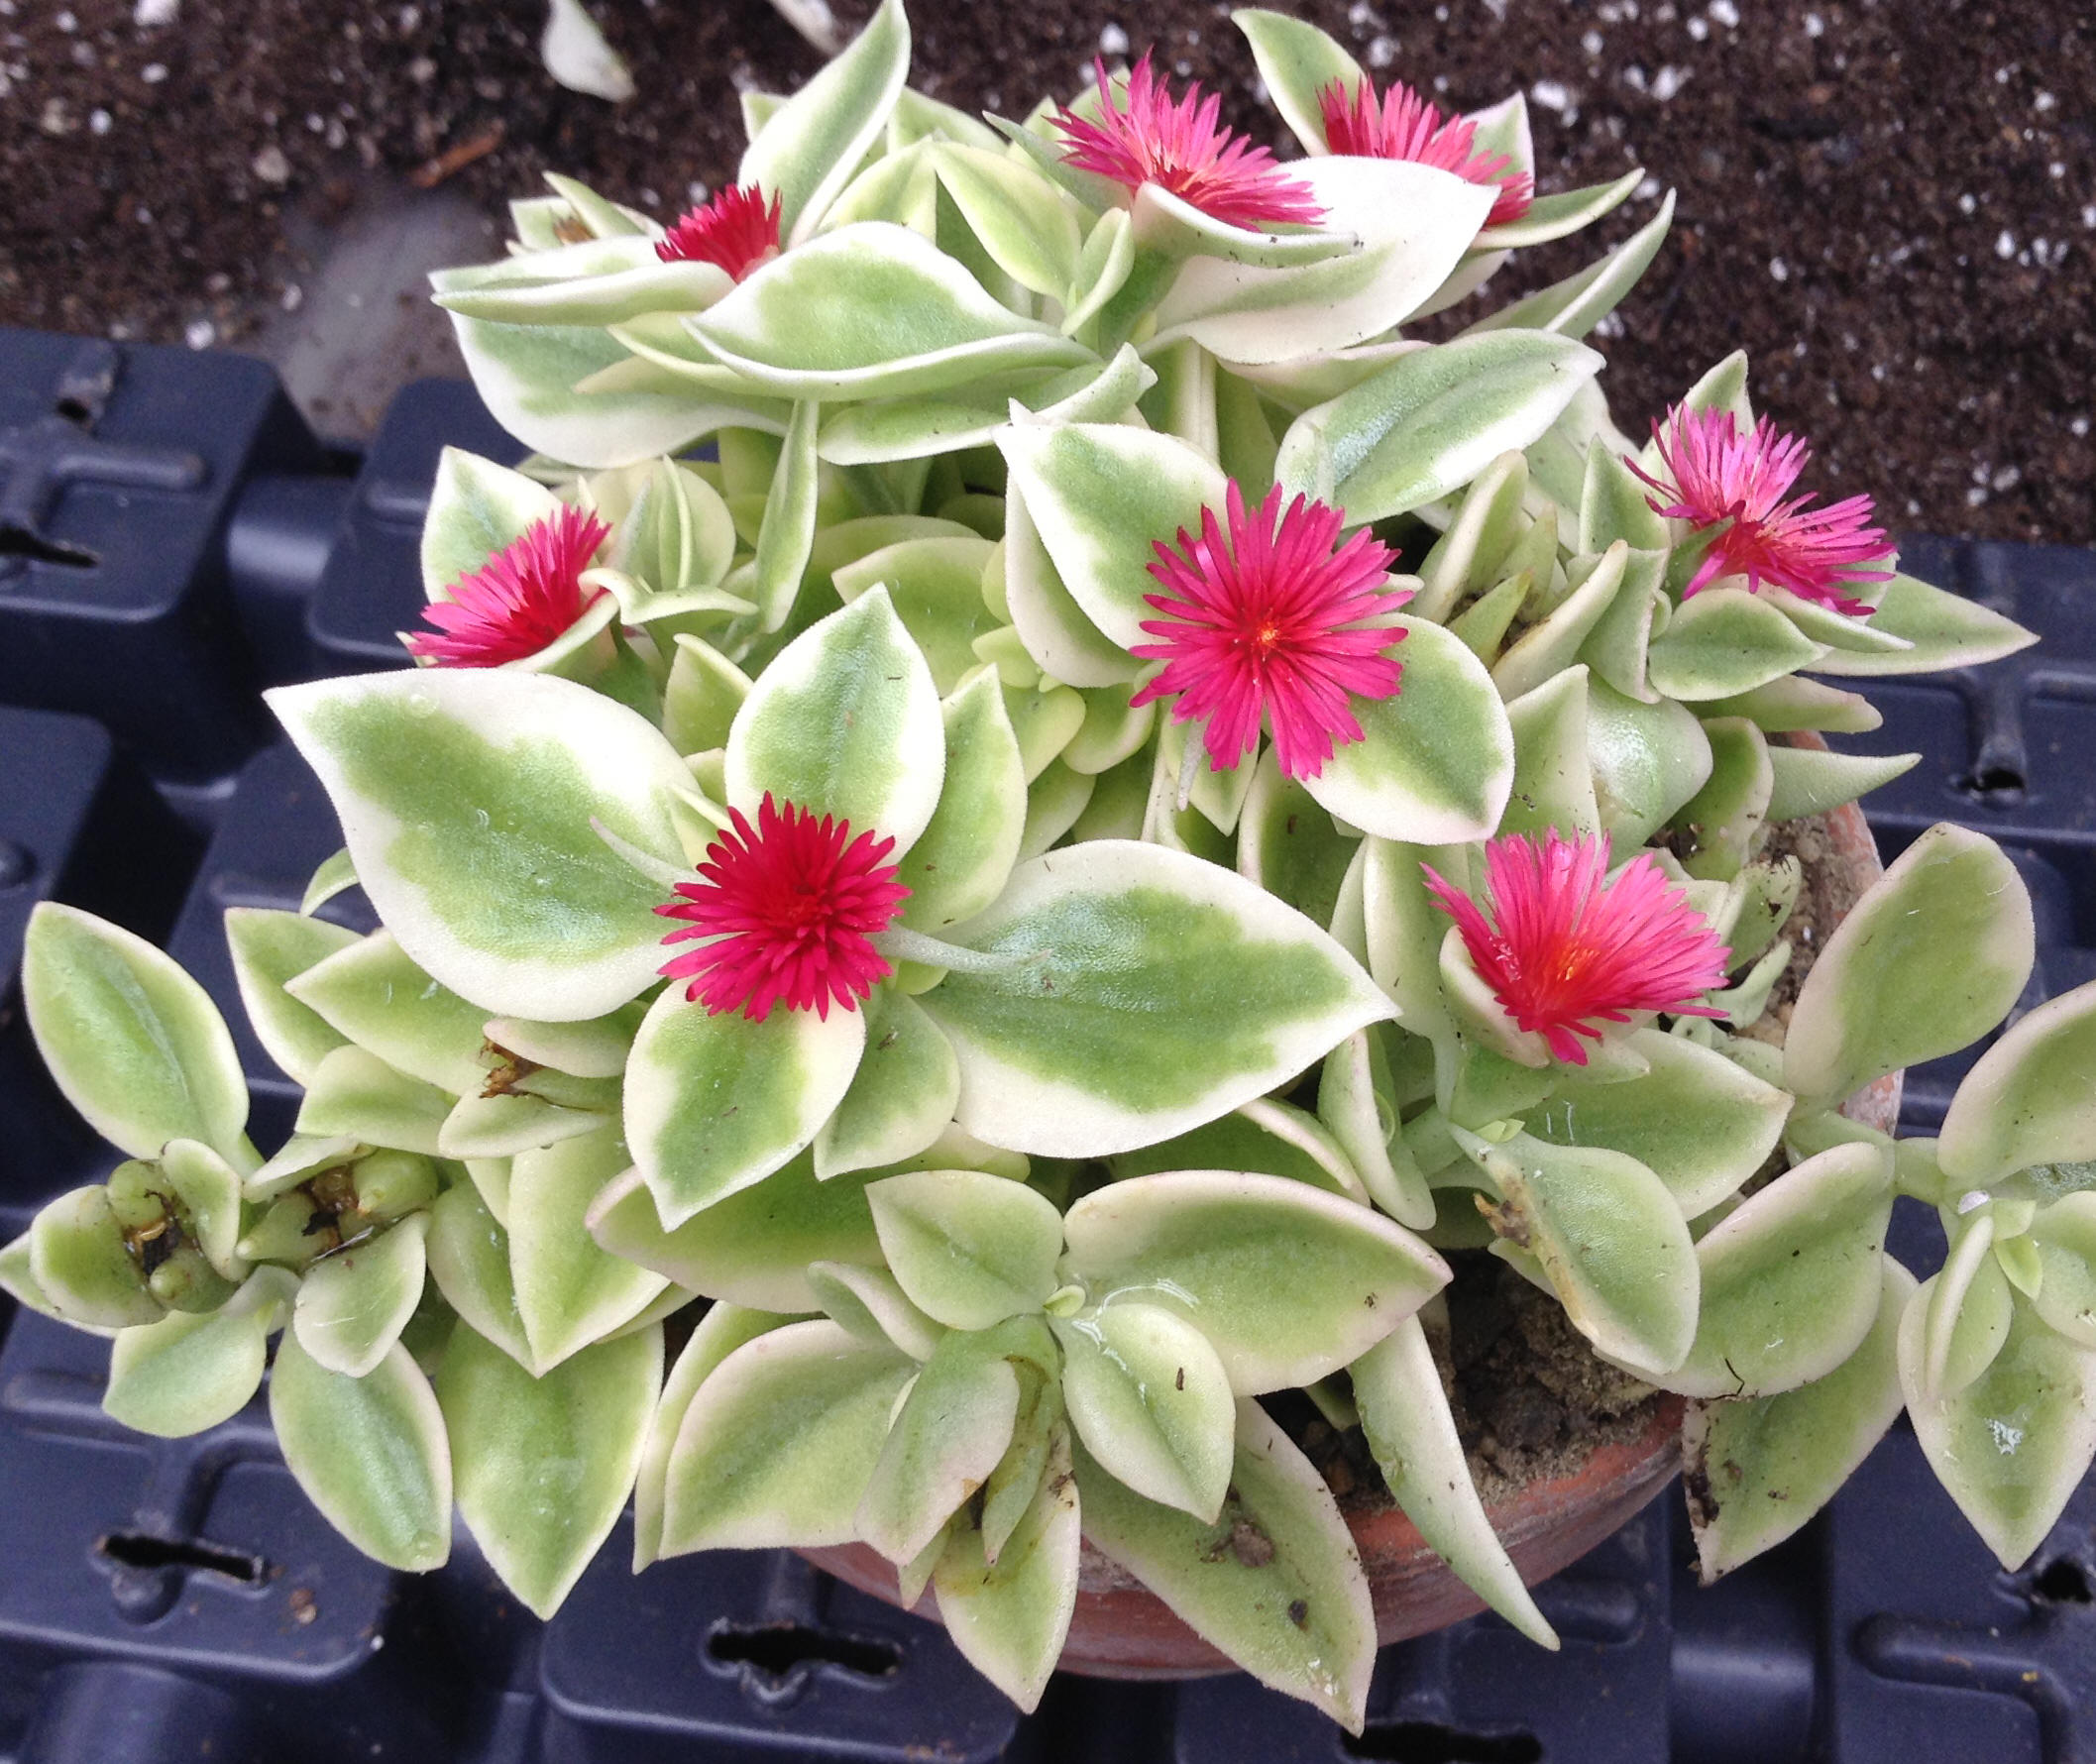 Variegated Baby Sunrose, also called variegated red apple (Aptenia cordifolia 'Variegata')